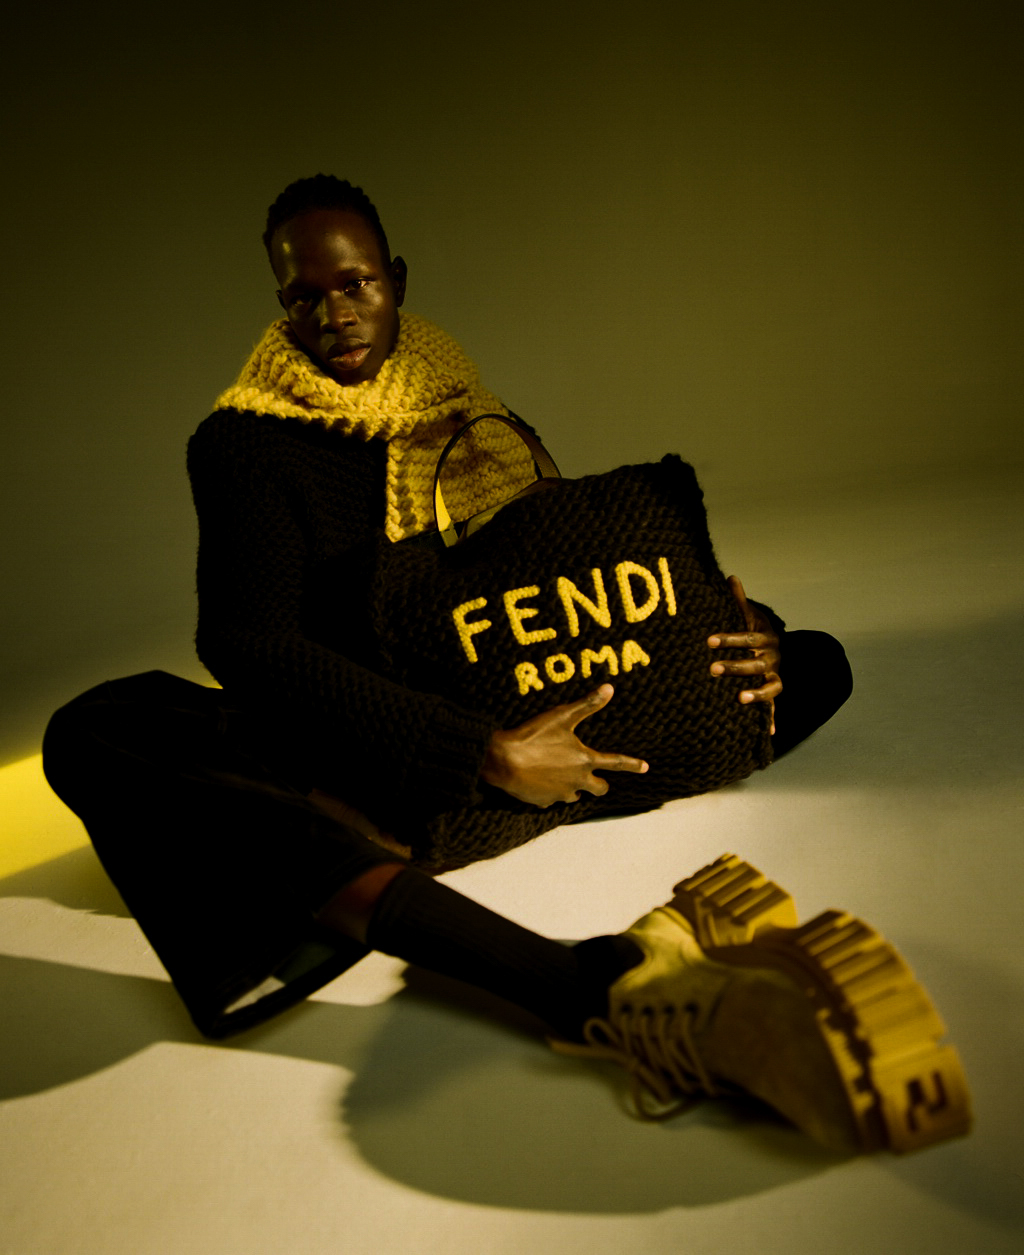 Fendi by Corey C Waters